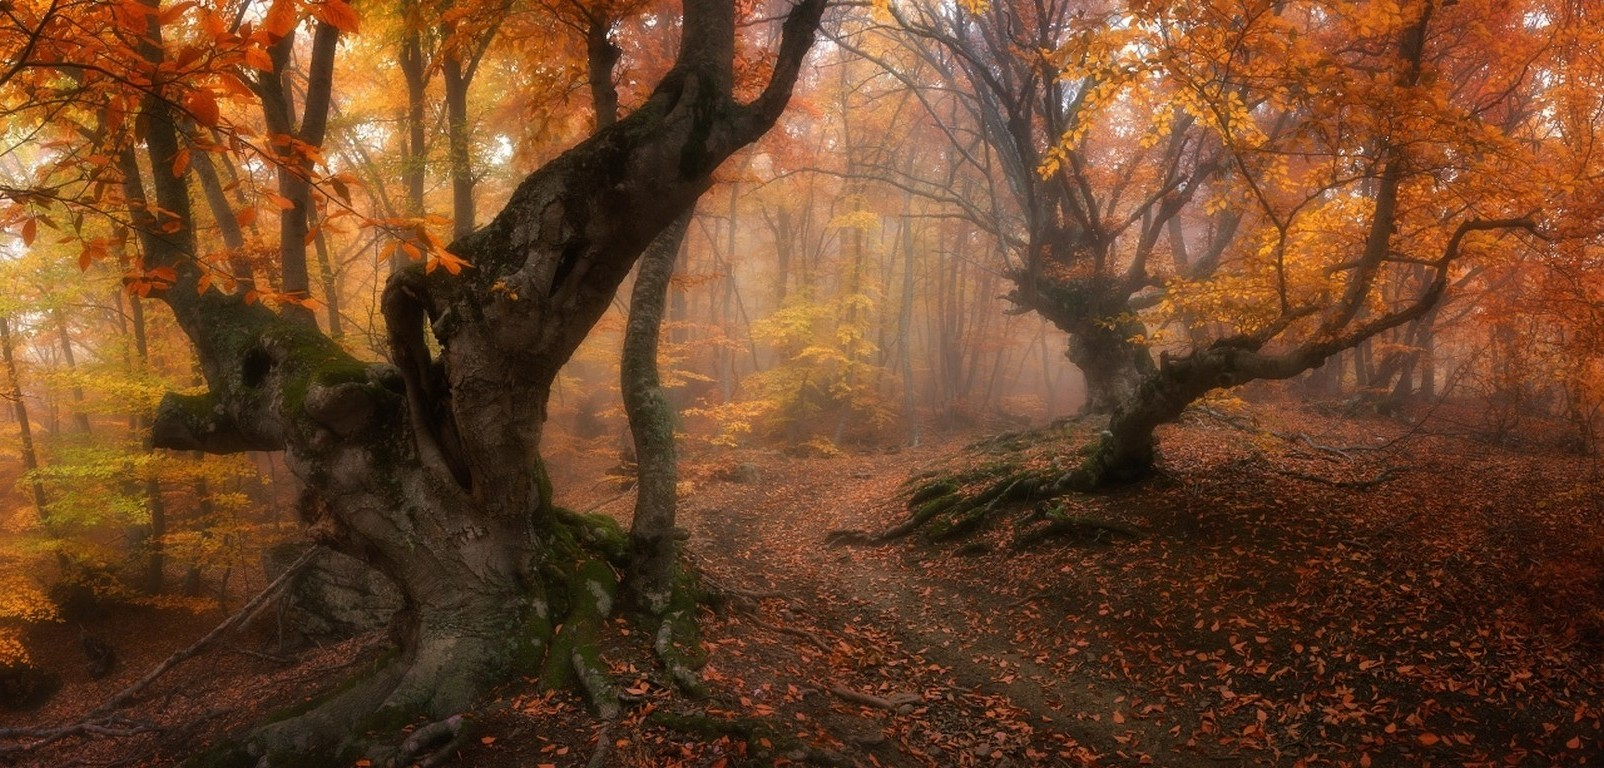 Fall Wallpaper Hd 1280x1024 Forest Magic Fall Trees Leaves Mist Path Roots